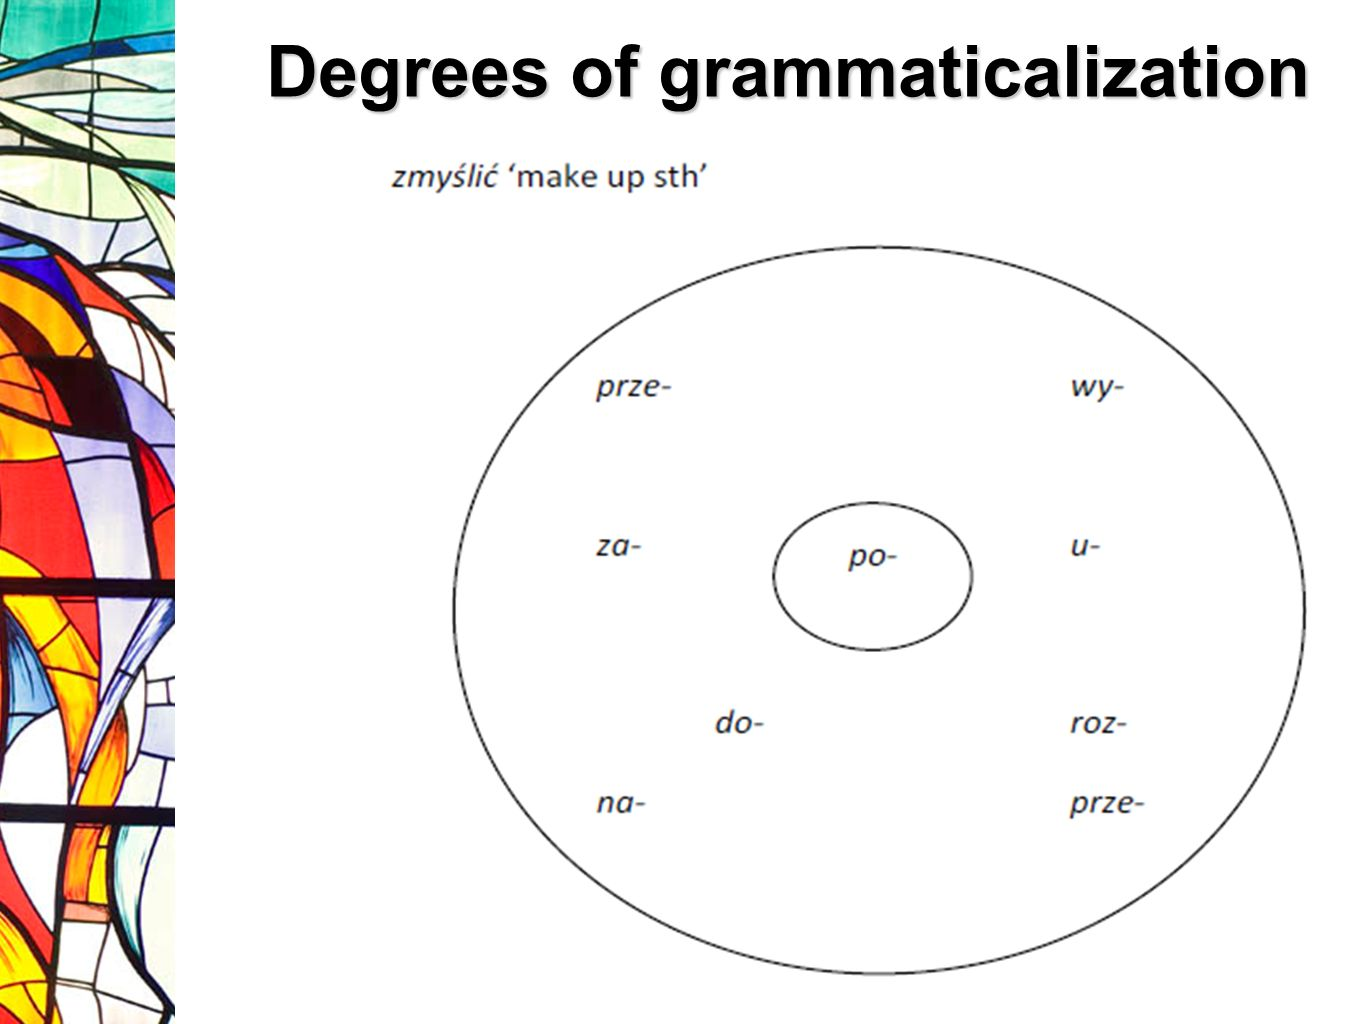 Degrees of grammaticalization